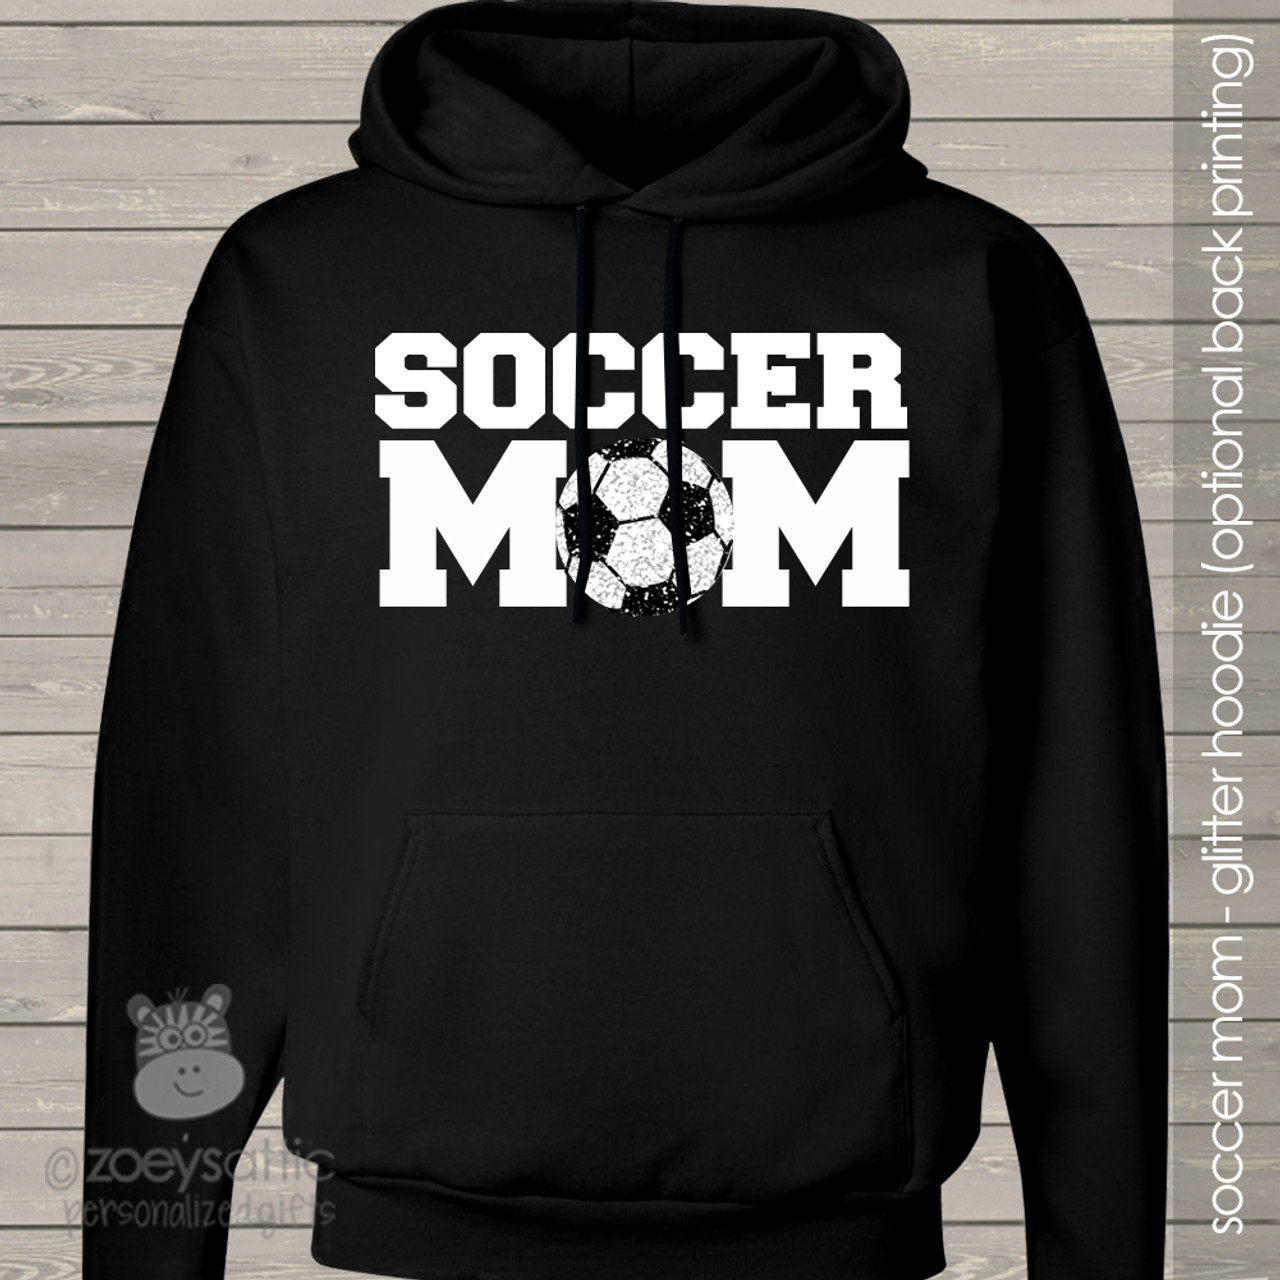 a481d099a9487 Soccer mom hoodie